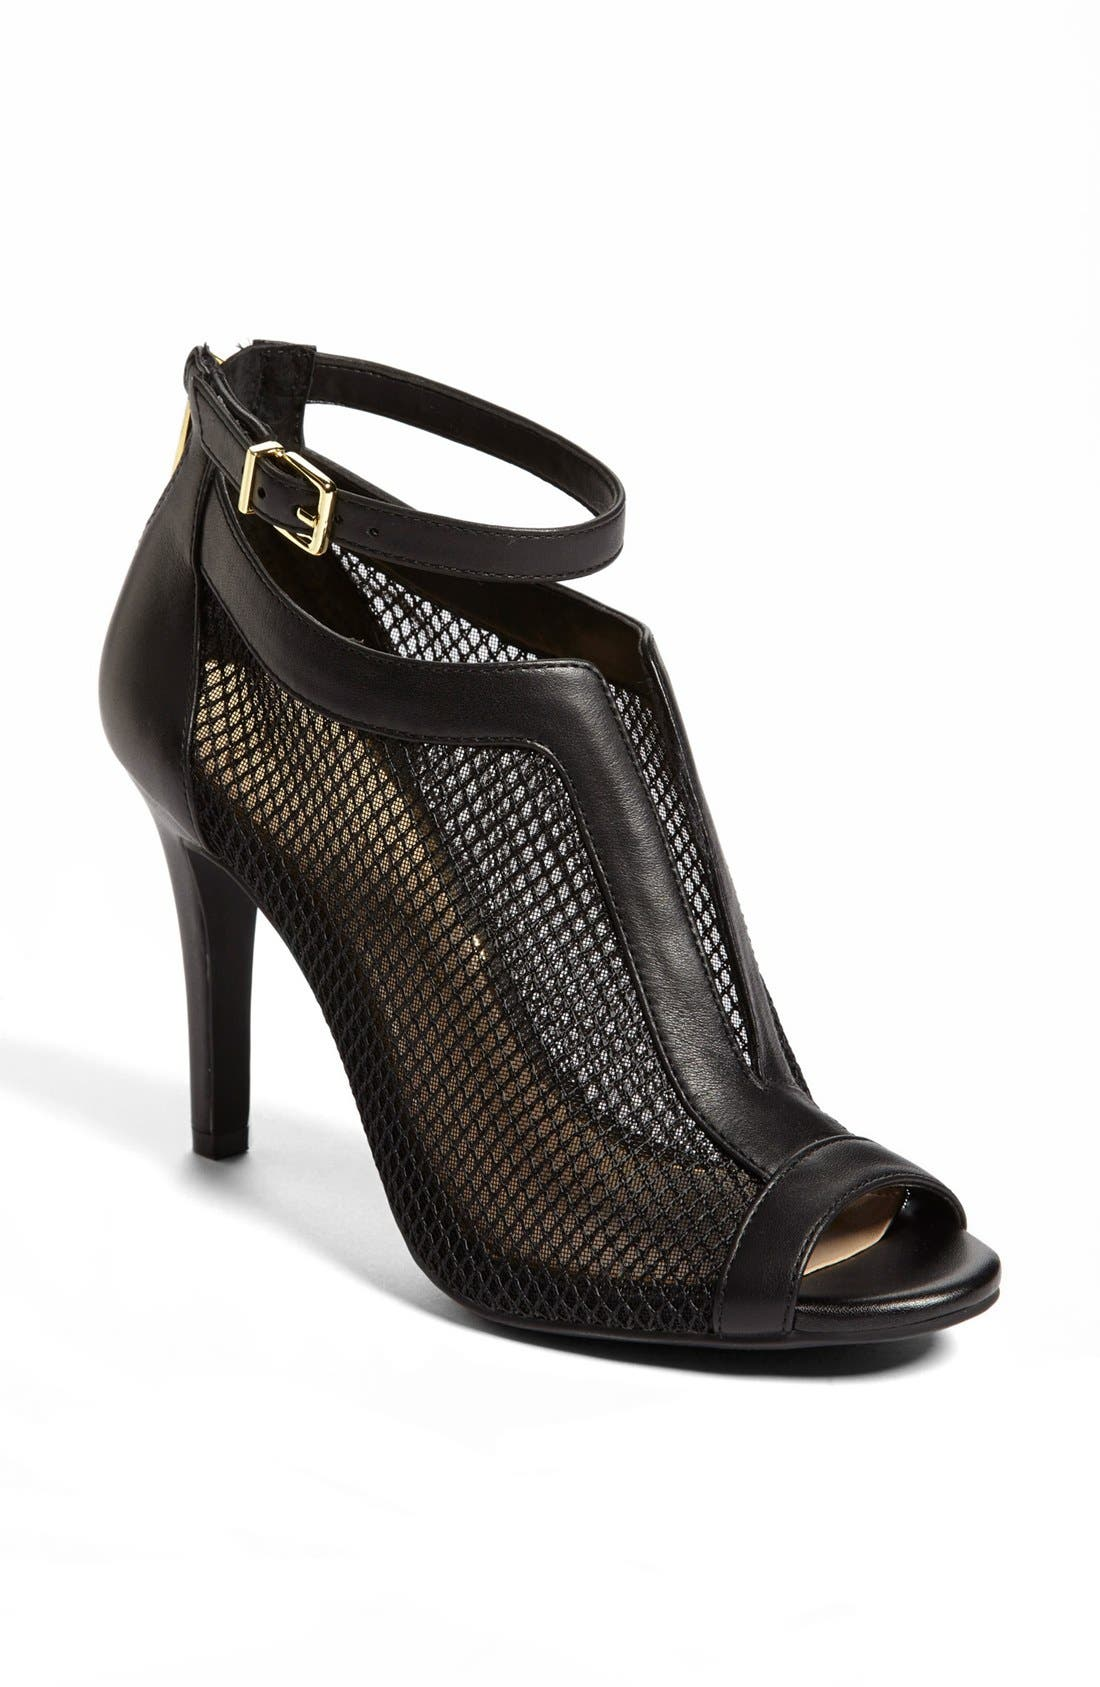 Main Image - Jessica Simpson 'Rossii' Ankle Strap Shootie